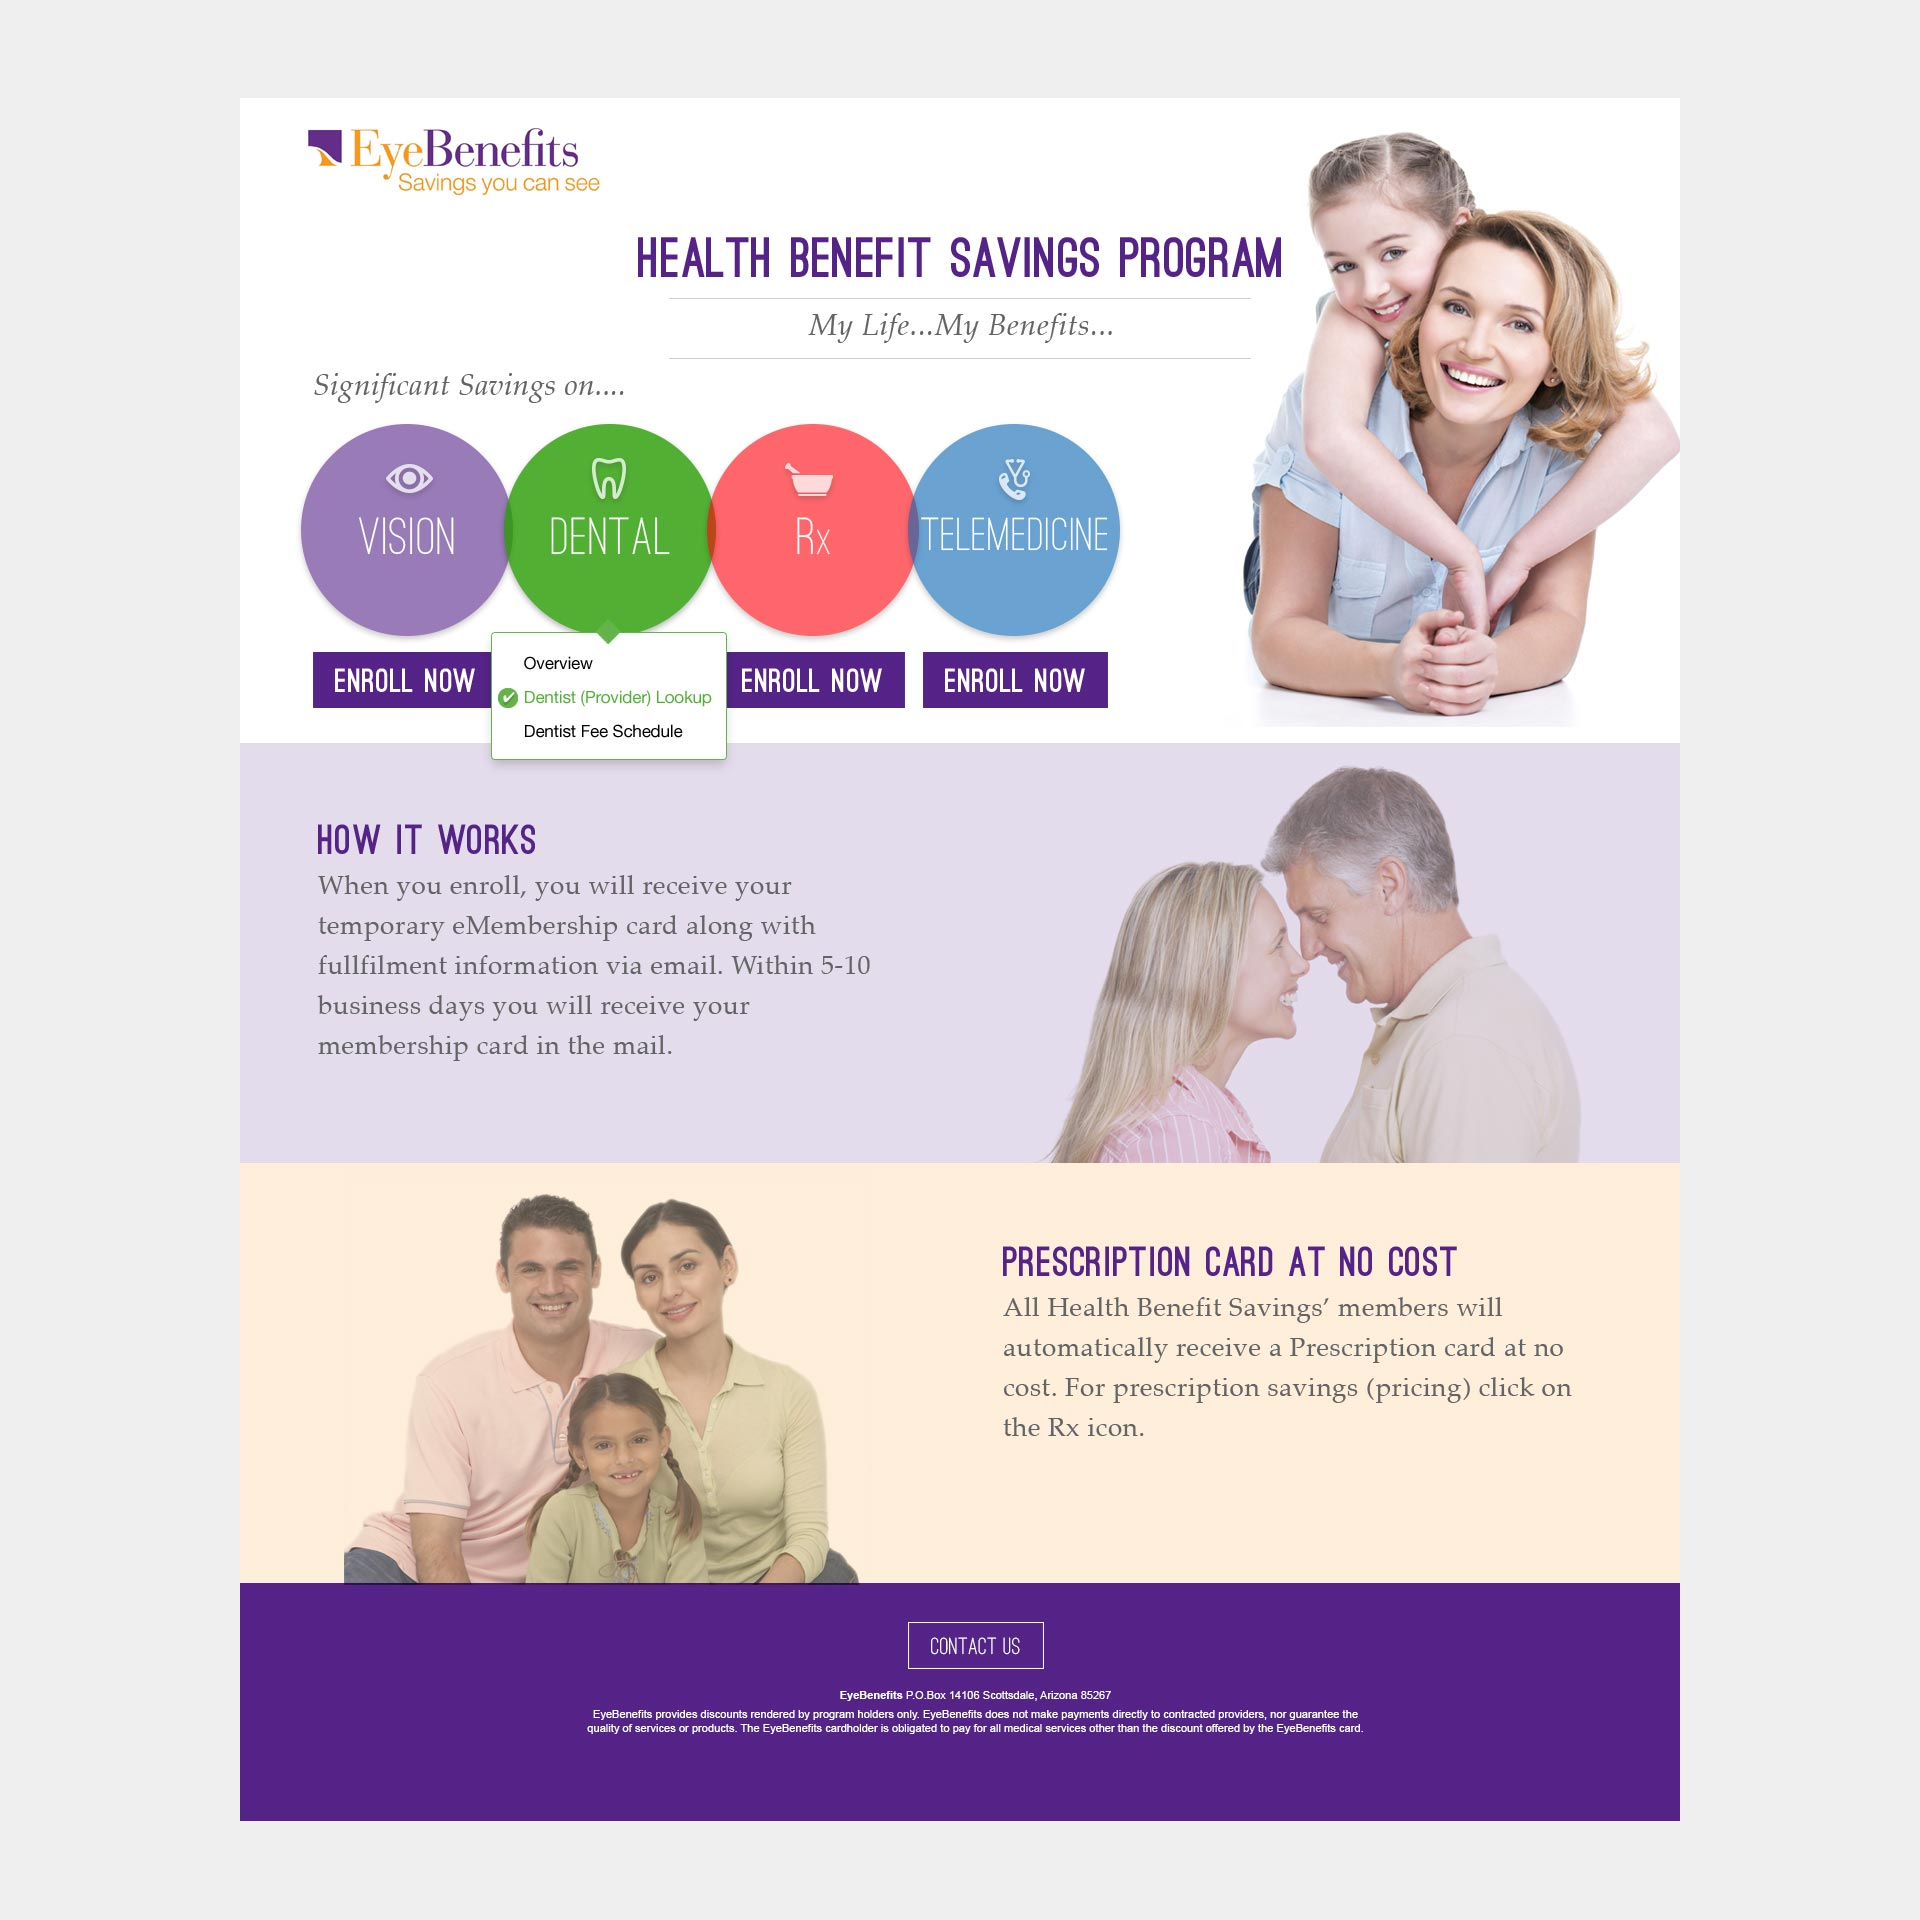 Medical Eye Care Business Landing Page Design image